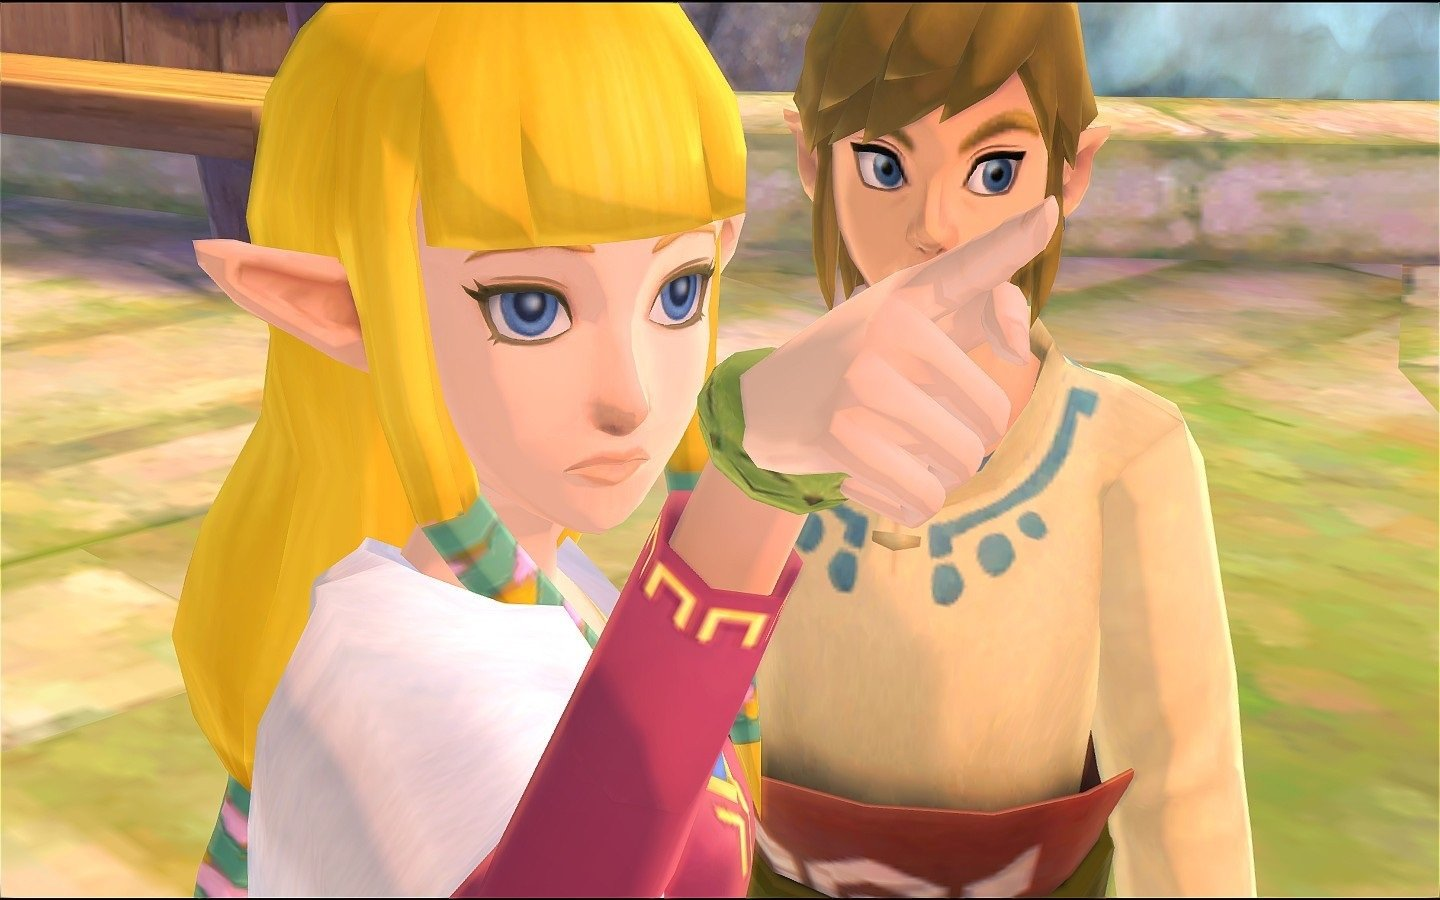 (Update) Zelda producer hints that Skyward Sword might be coming to Switch screenshot